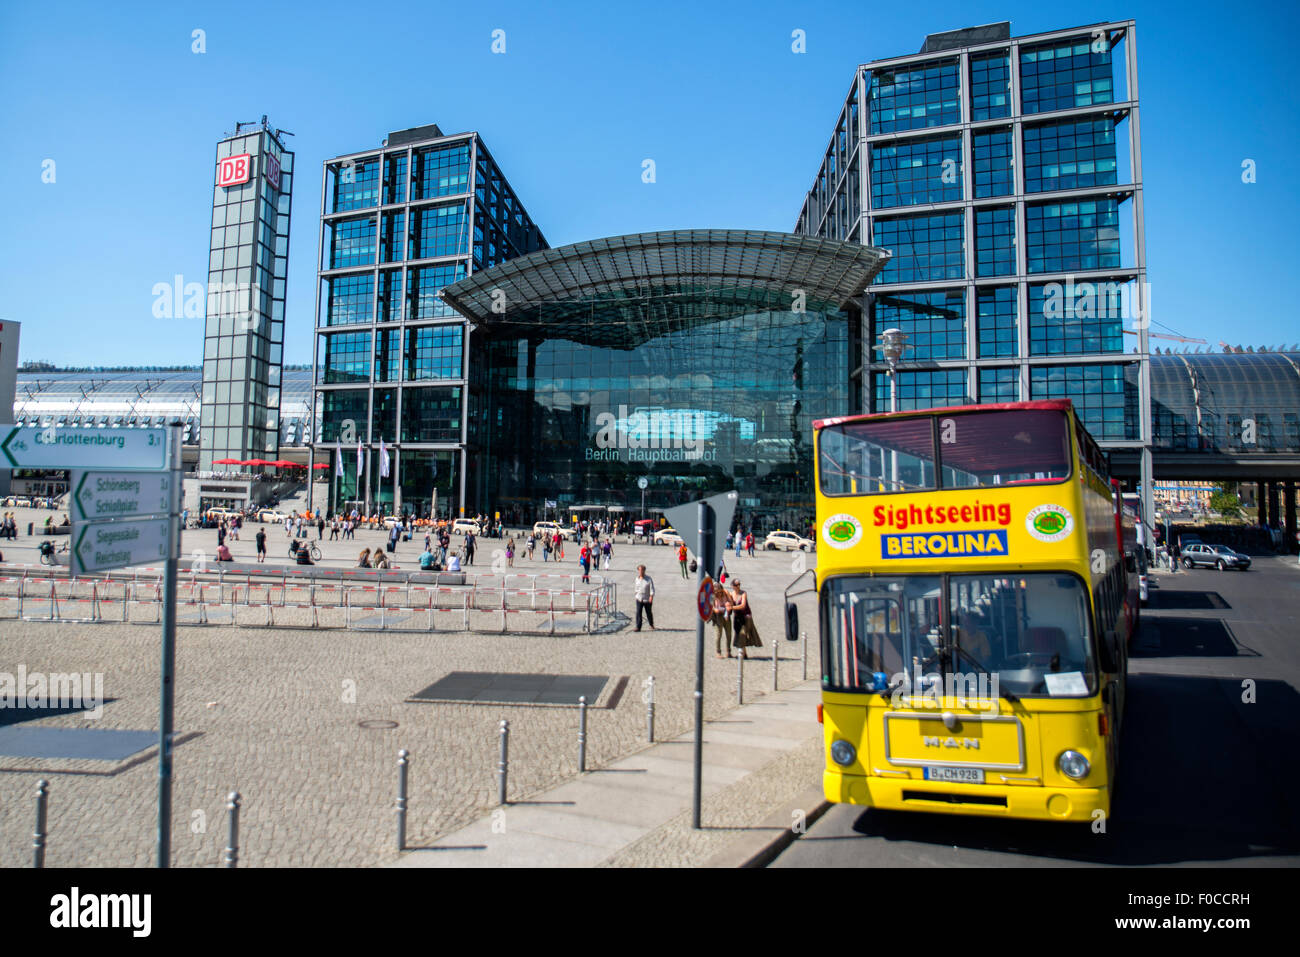 Berlin central coach station